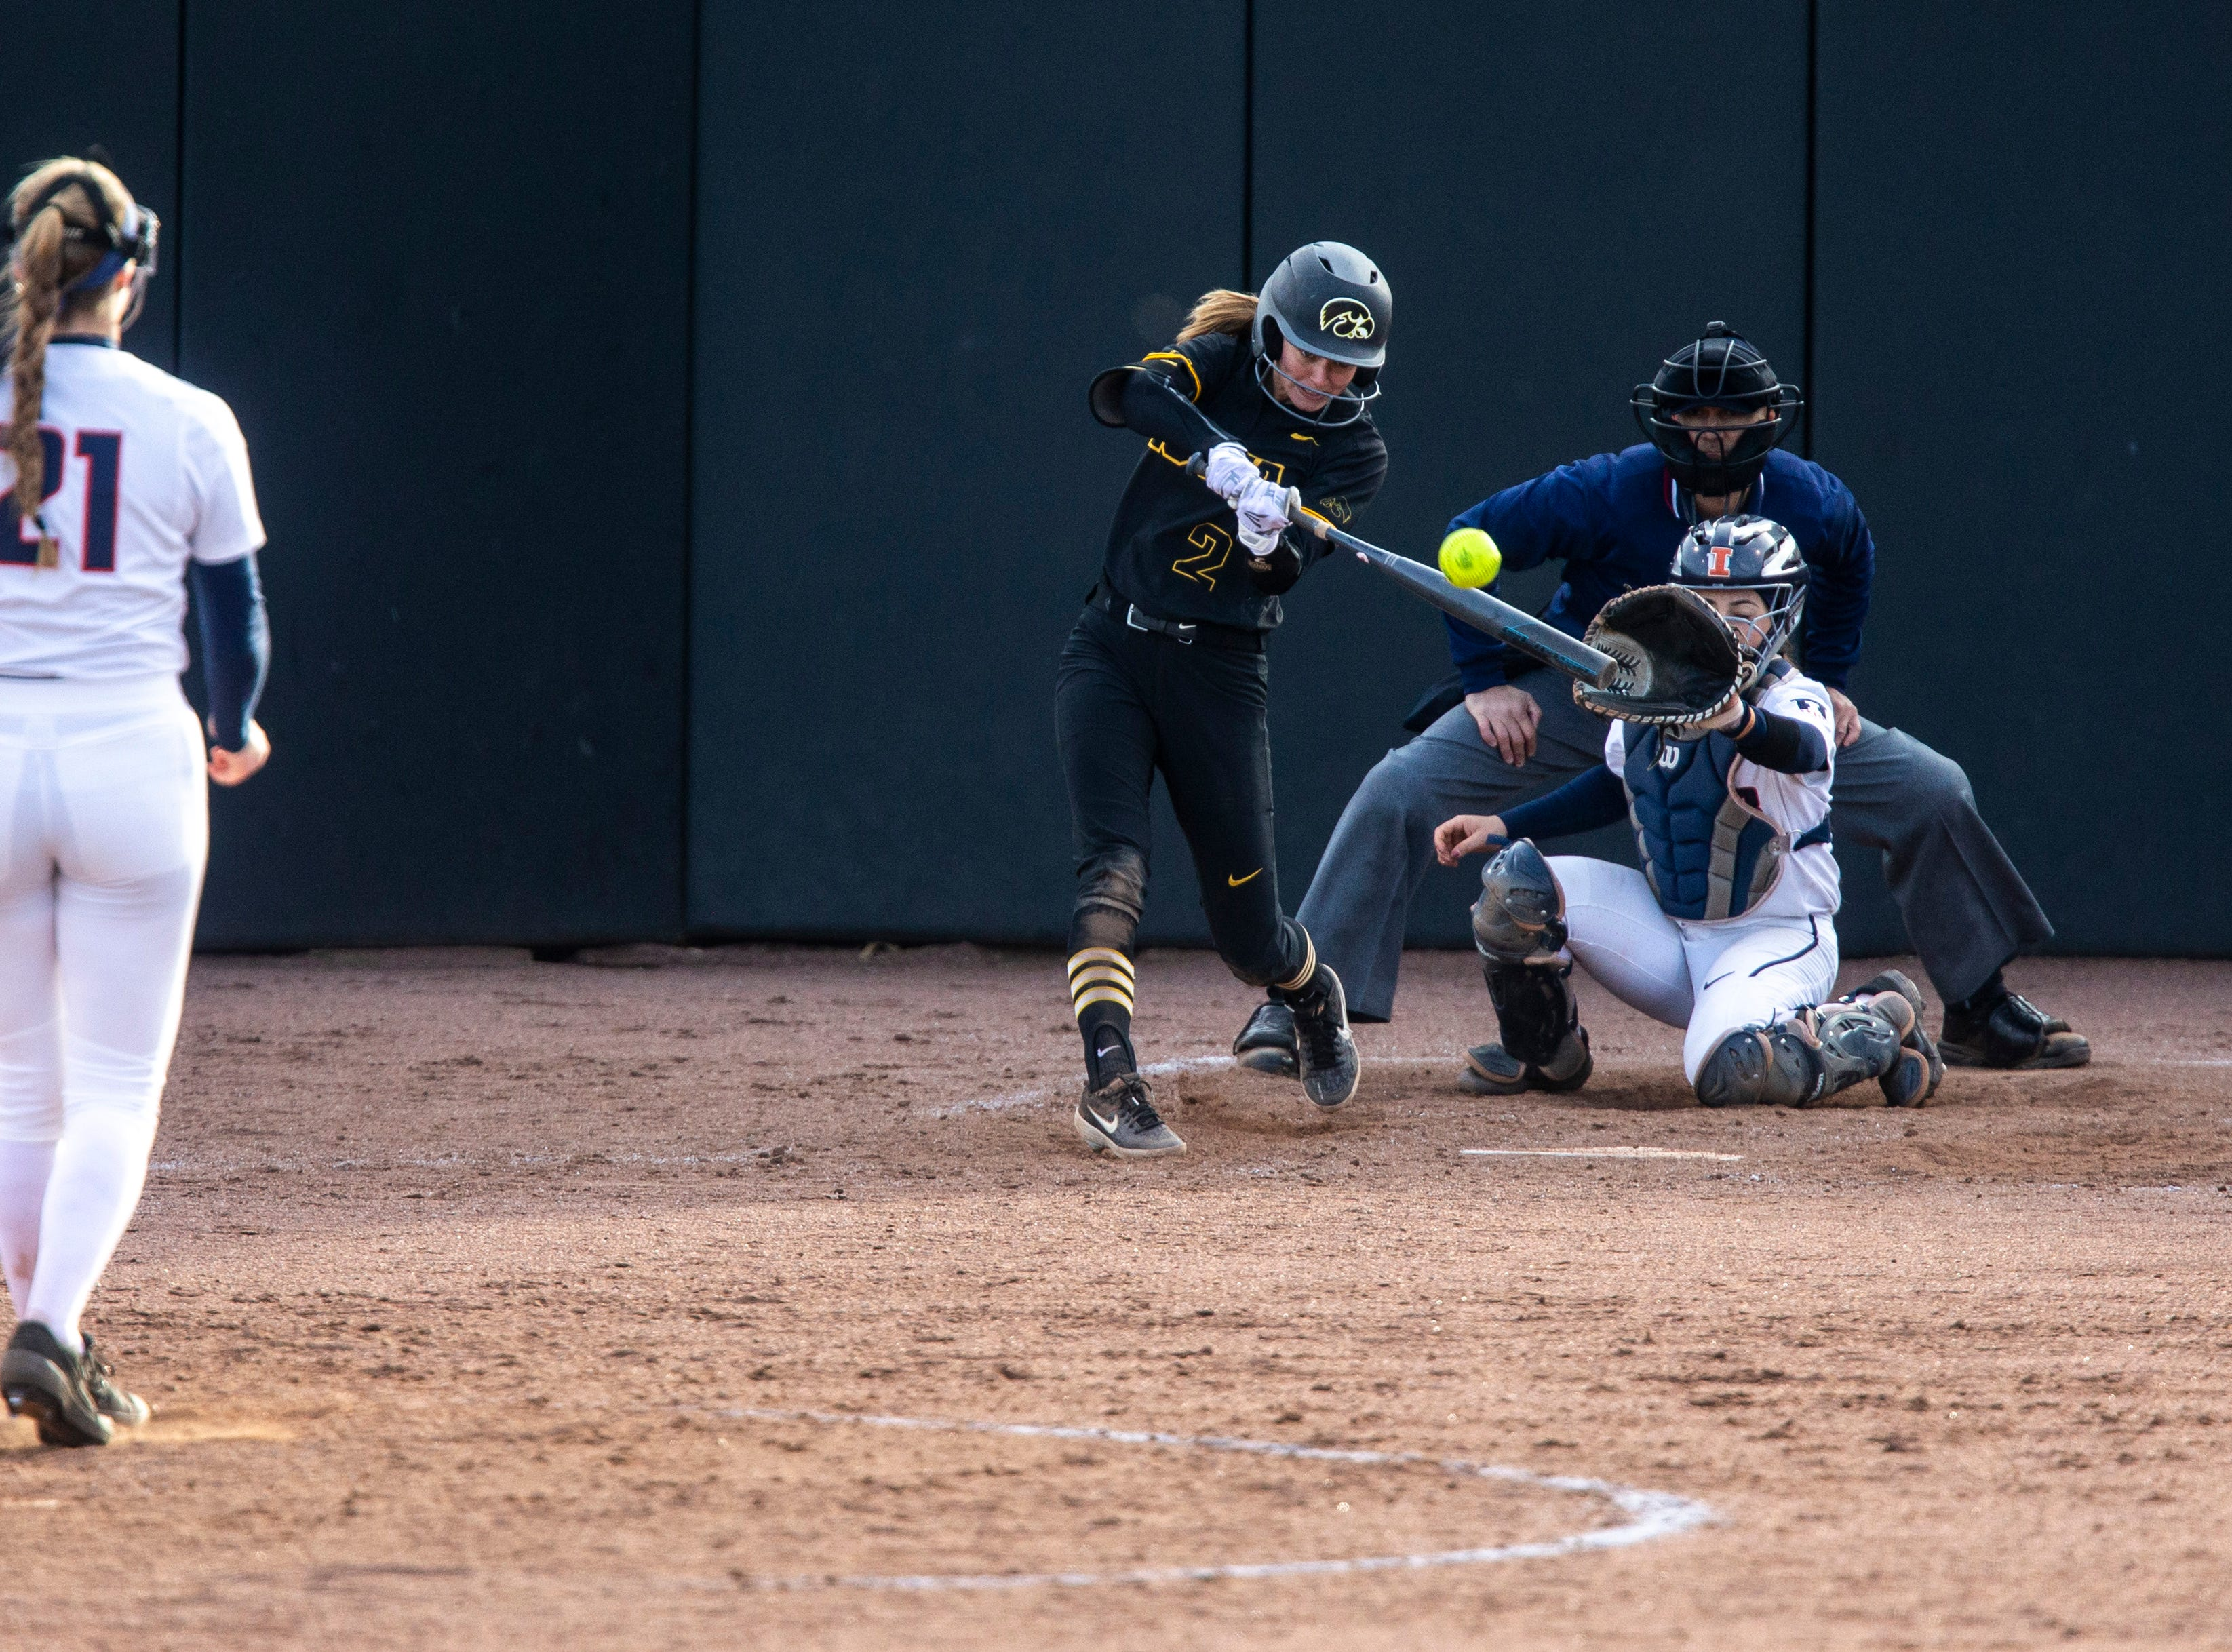 Iowa utility player Aralee Bogar (2) hits a double, batting in runners to tie the game, during a NCAA Big Ten Conference softball game on Saturday, April 13, 2019, at Bob Pearl Field in Coralville, Iowa.